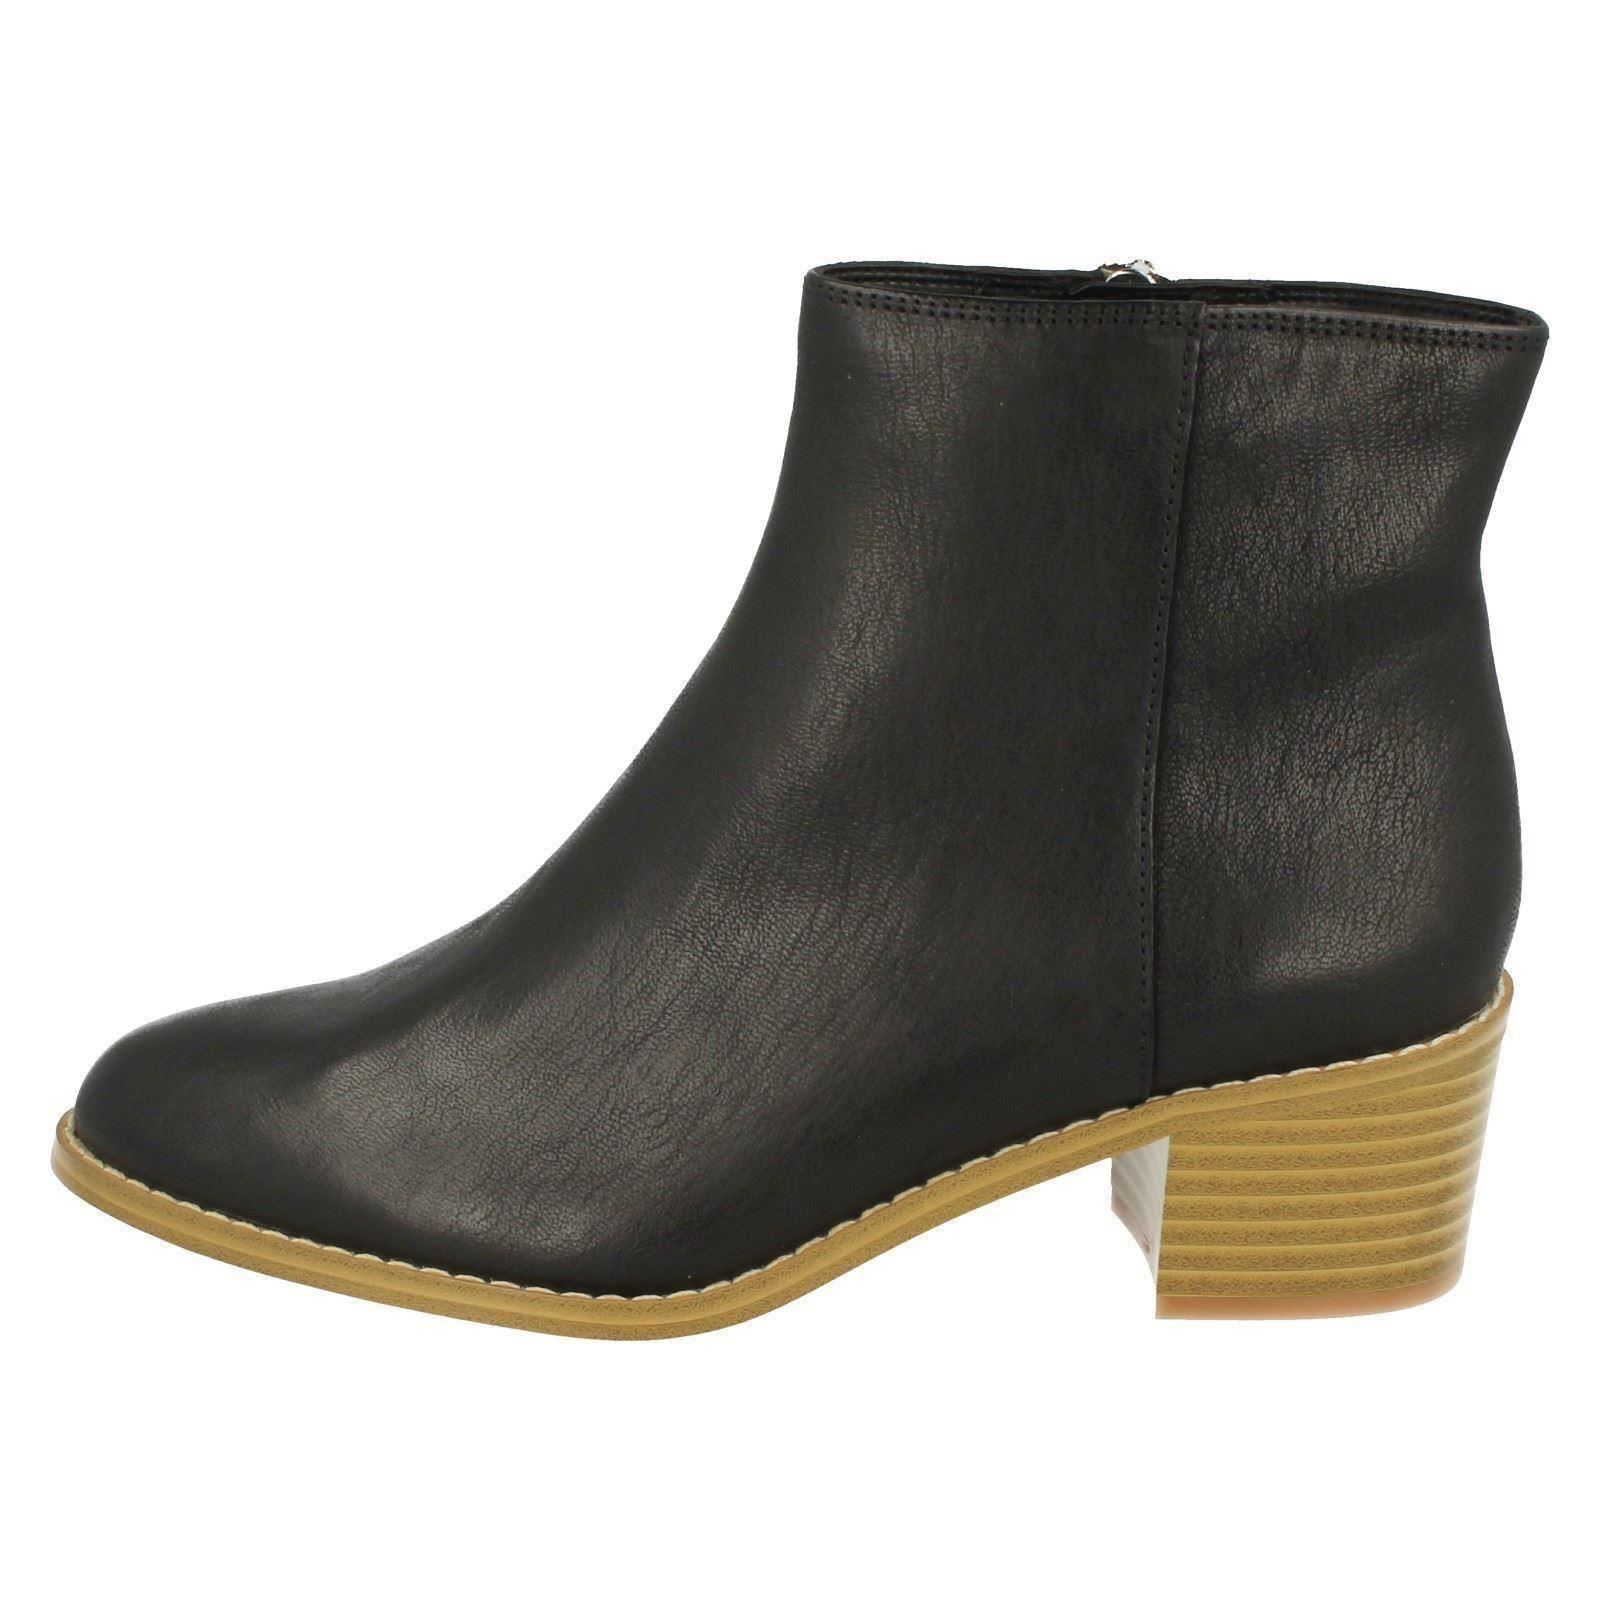 Ladies Clarks Ranch Style Ankle Boots *Breccan Myth*